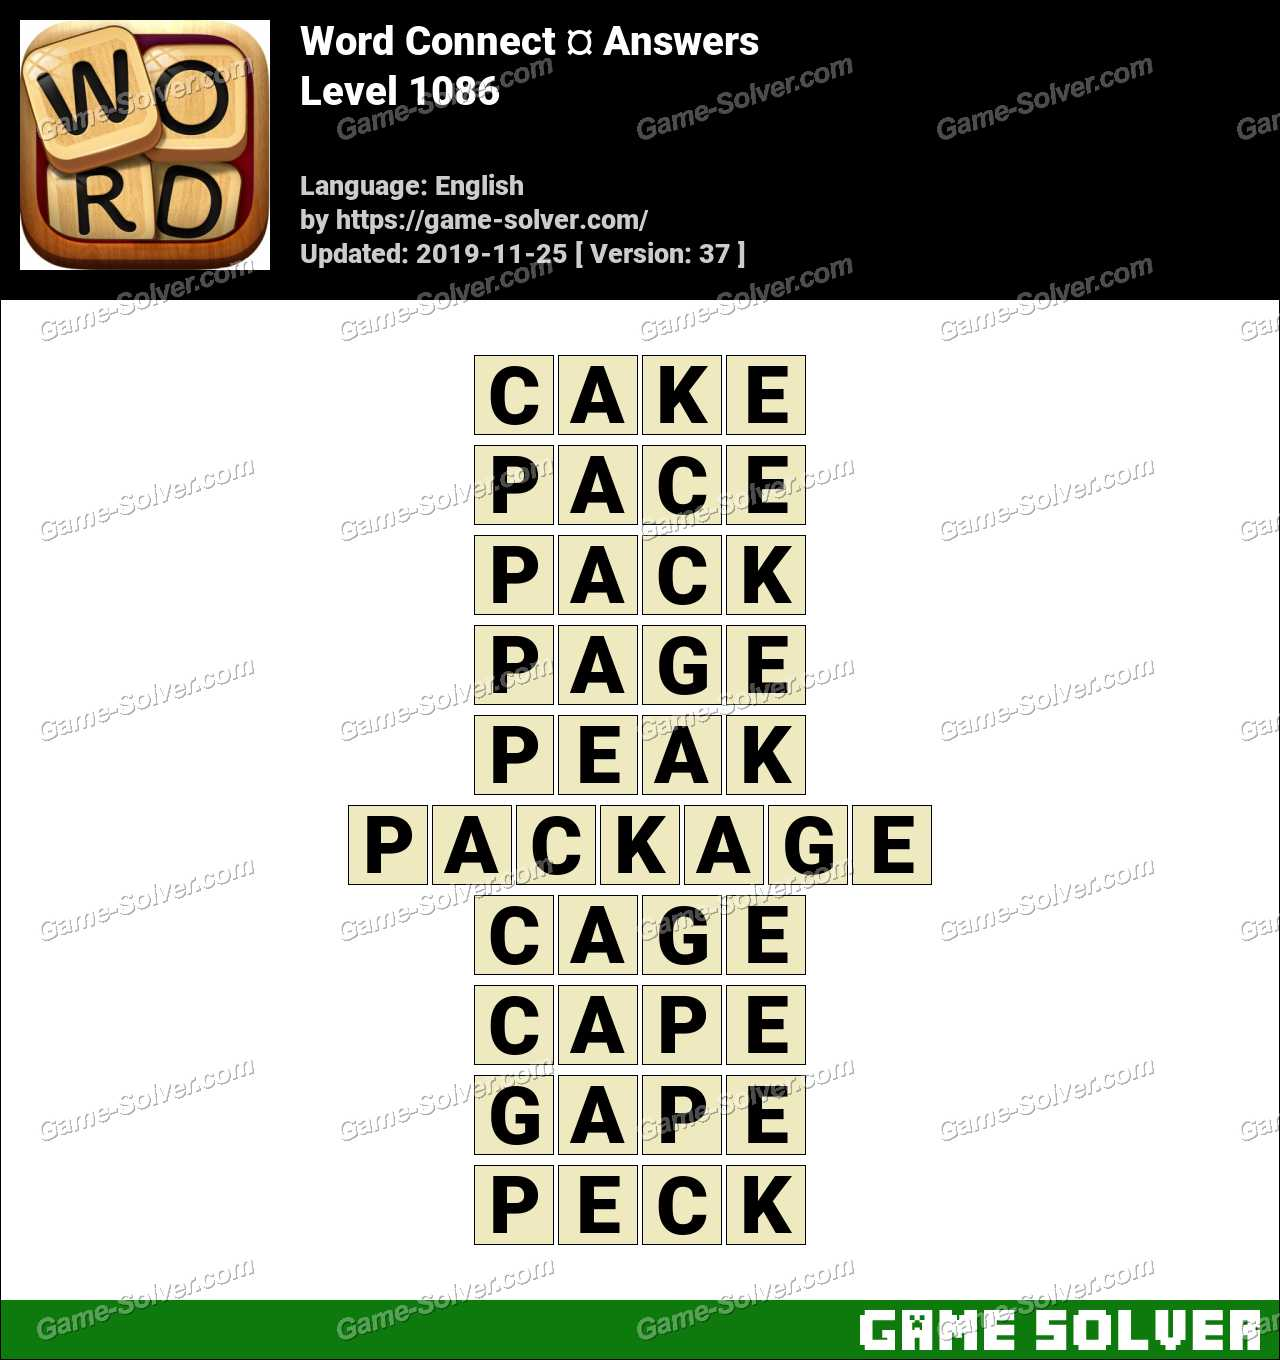 Word Connect Level 1086 Answers